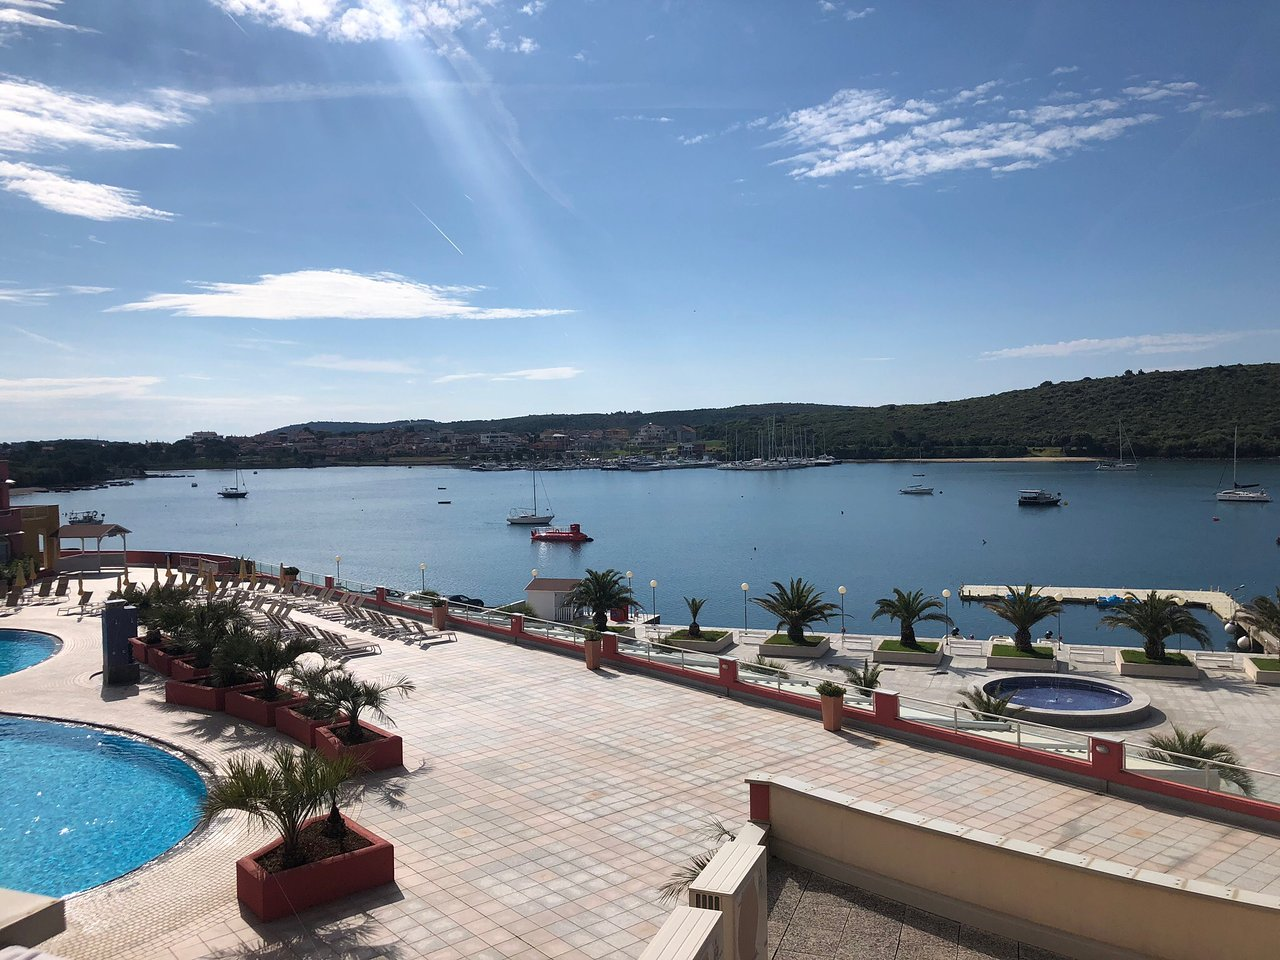 Banjole Croazia Aparthotel Del Mar Updated 2019 Prices Hotel Reviews And